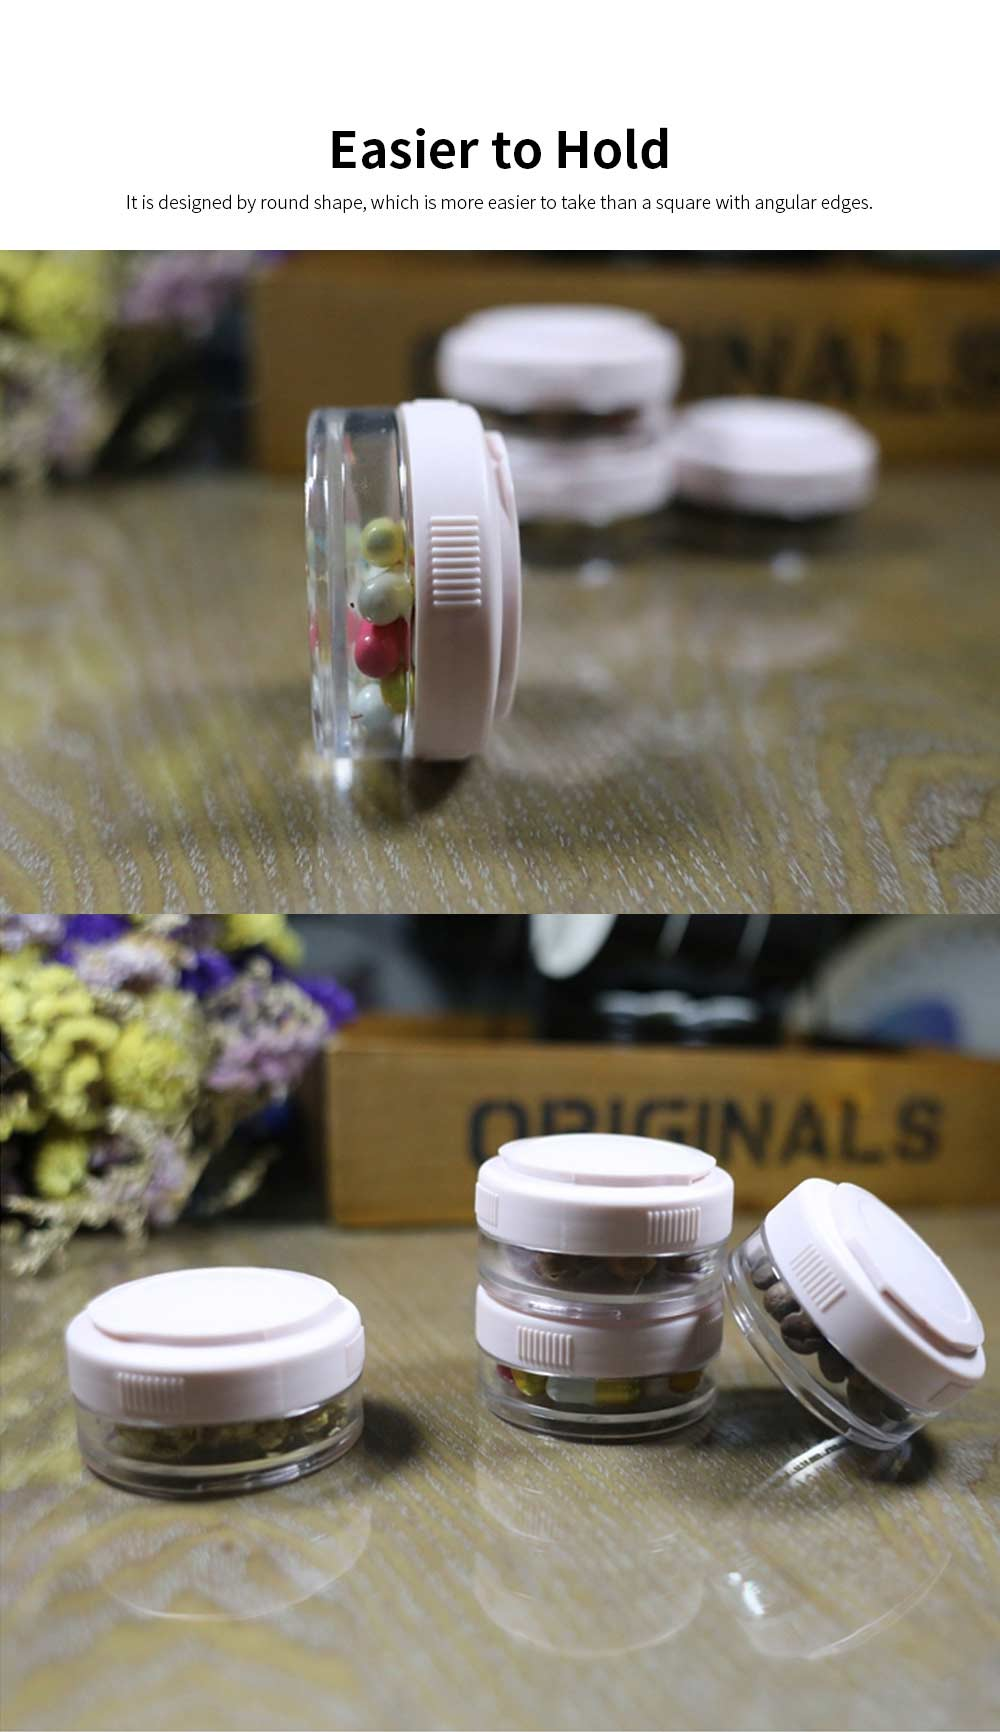 Layers Sealed Medicine Powder Box, Home Travel Essential Pill Organizer Transparent Container 4